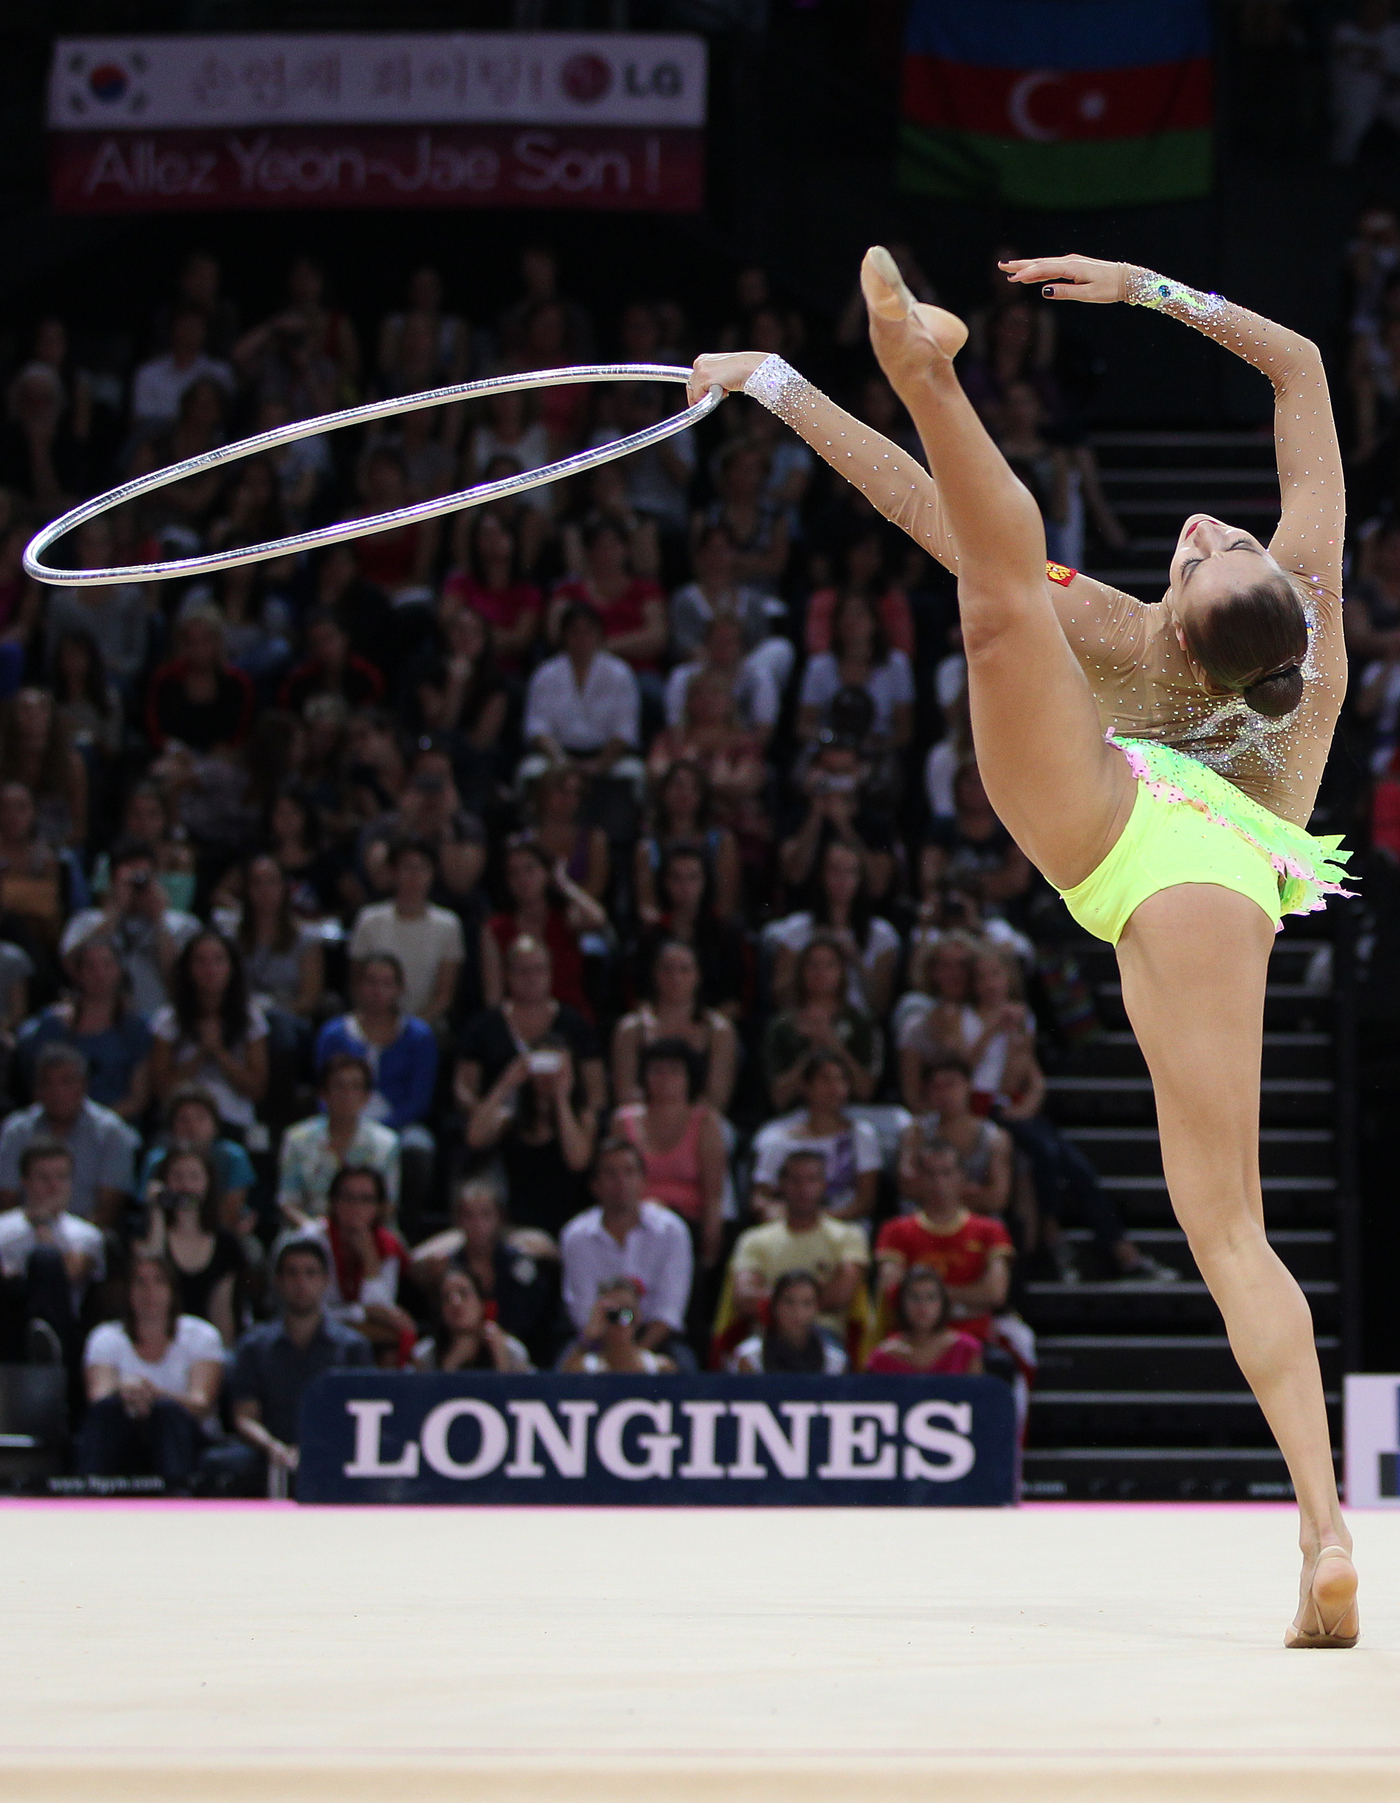 Longines Gymnastics Event: Rhythmic Gymnastics World Championships 2011 4